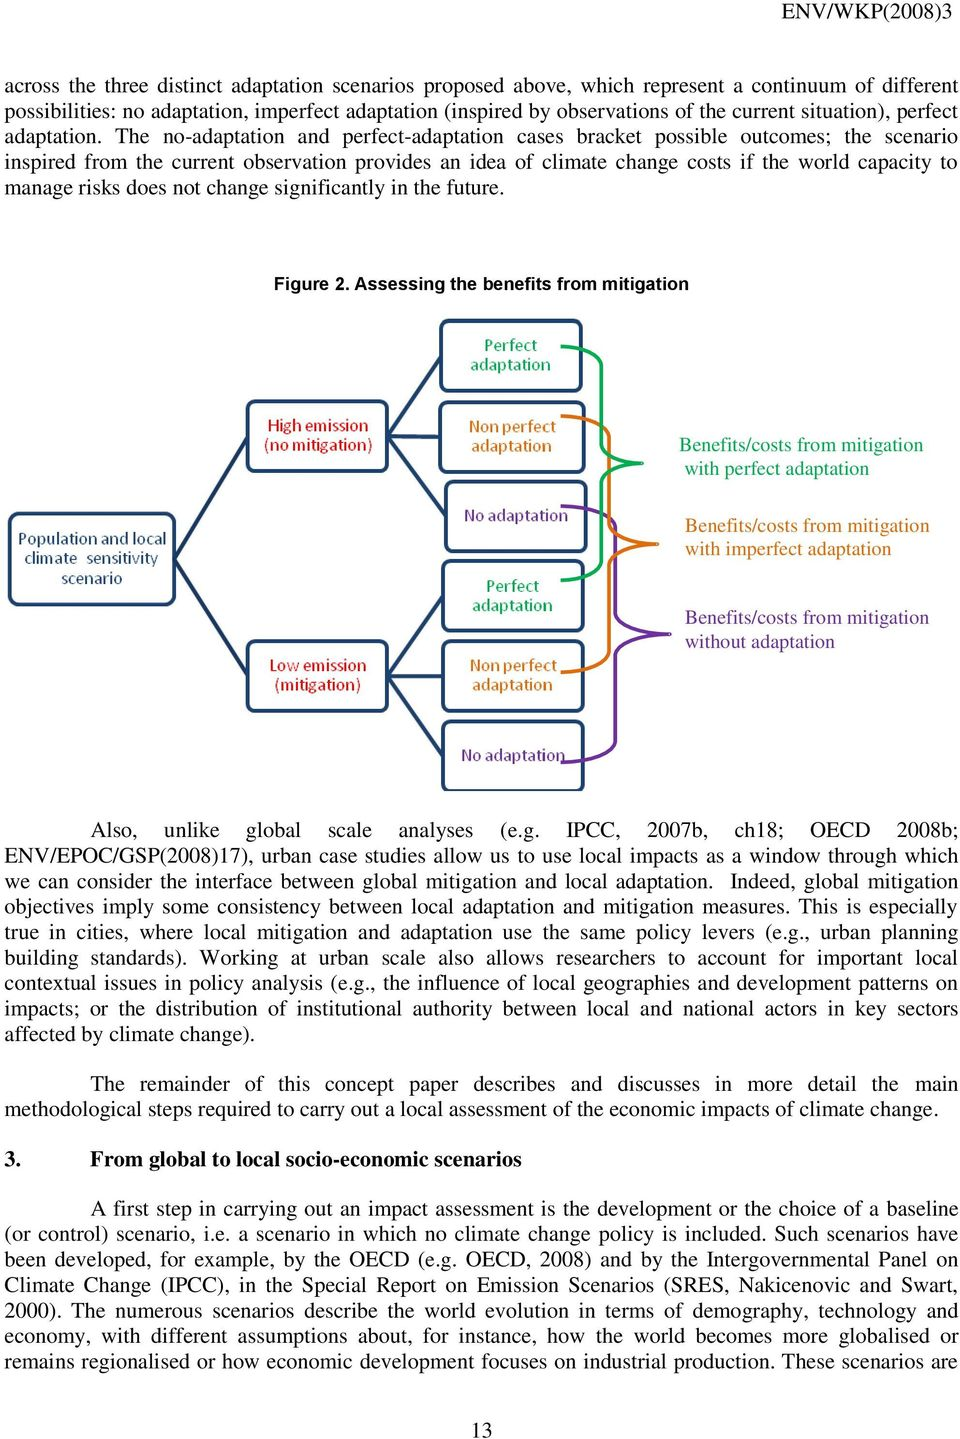 The no-adaptation and perfect-adaptation cases bracket possible outcomes; the scenario inspired from the current observation provides an idea of climate change costs if the world capacity to manage